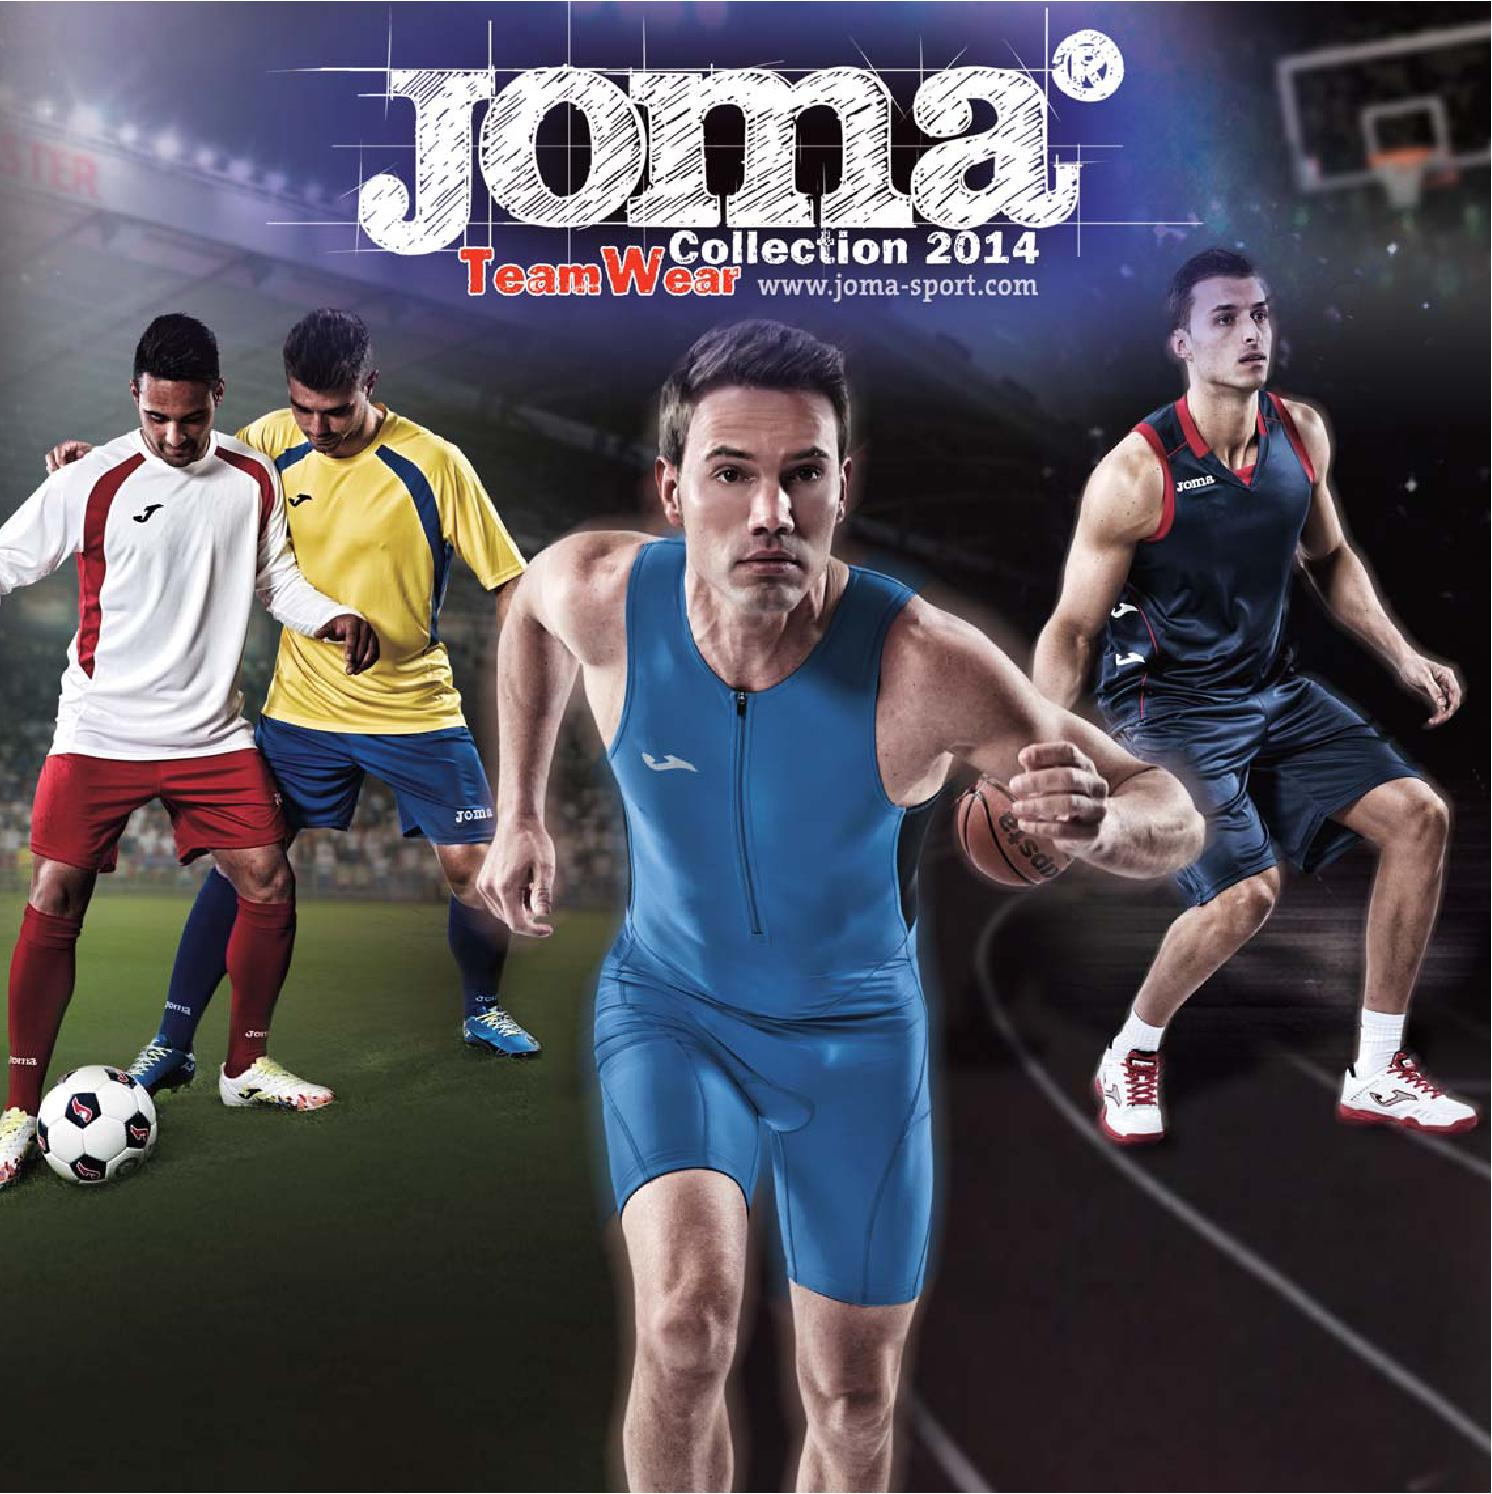 TEAMWEAR COLLECTION 2014 by JOMA SPORT - issuu